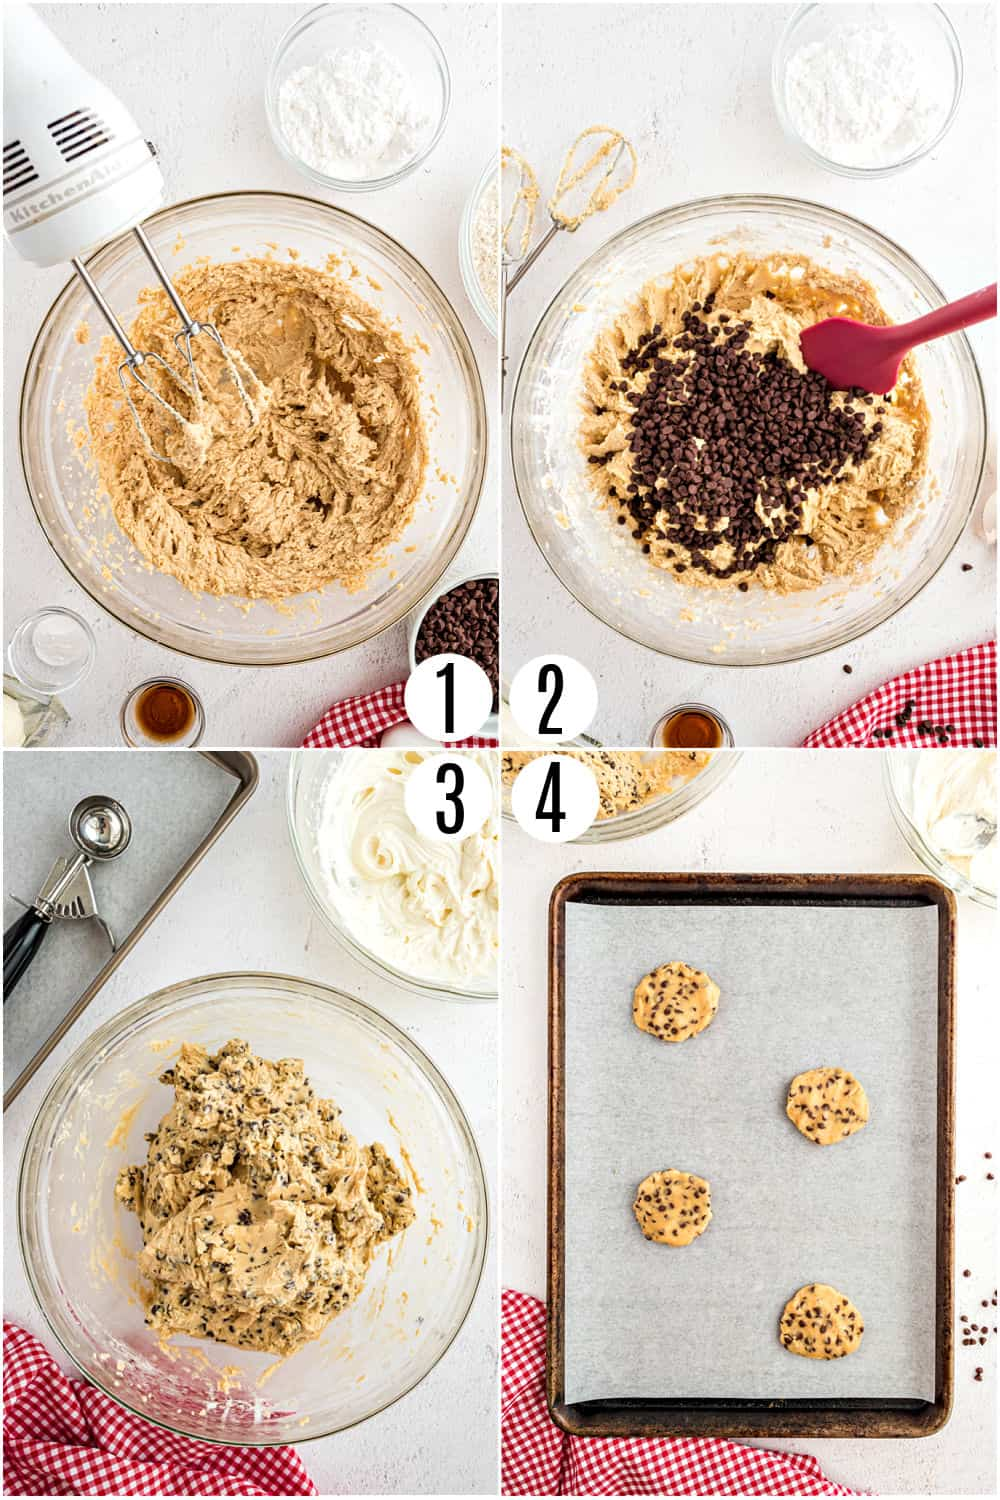 Step by step photos showing how to make chocolate chip cookie dough.